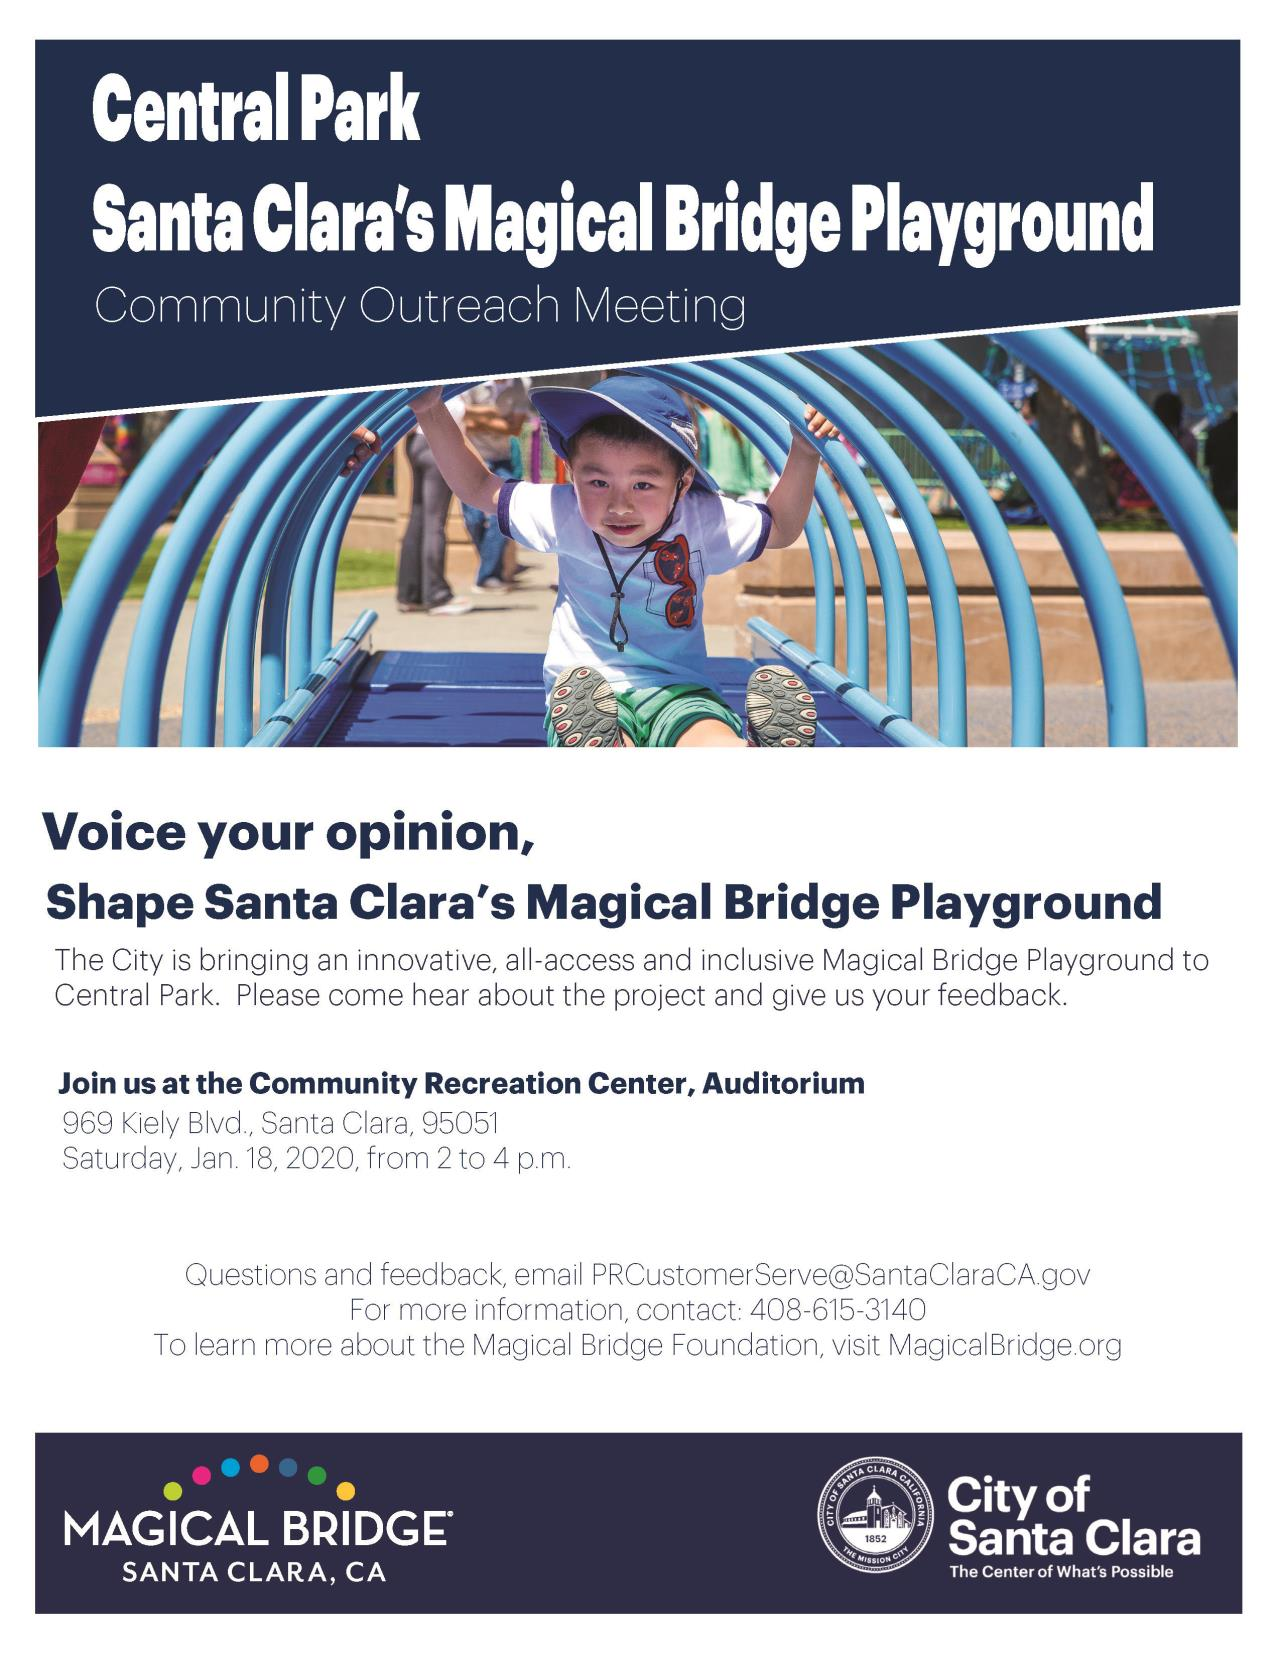 Magical Bridge Playground Community Meeting. Join us for the meeting on Jan. 18, from 2- 4 p.m. at the Community Recreation Center